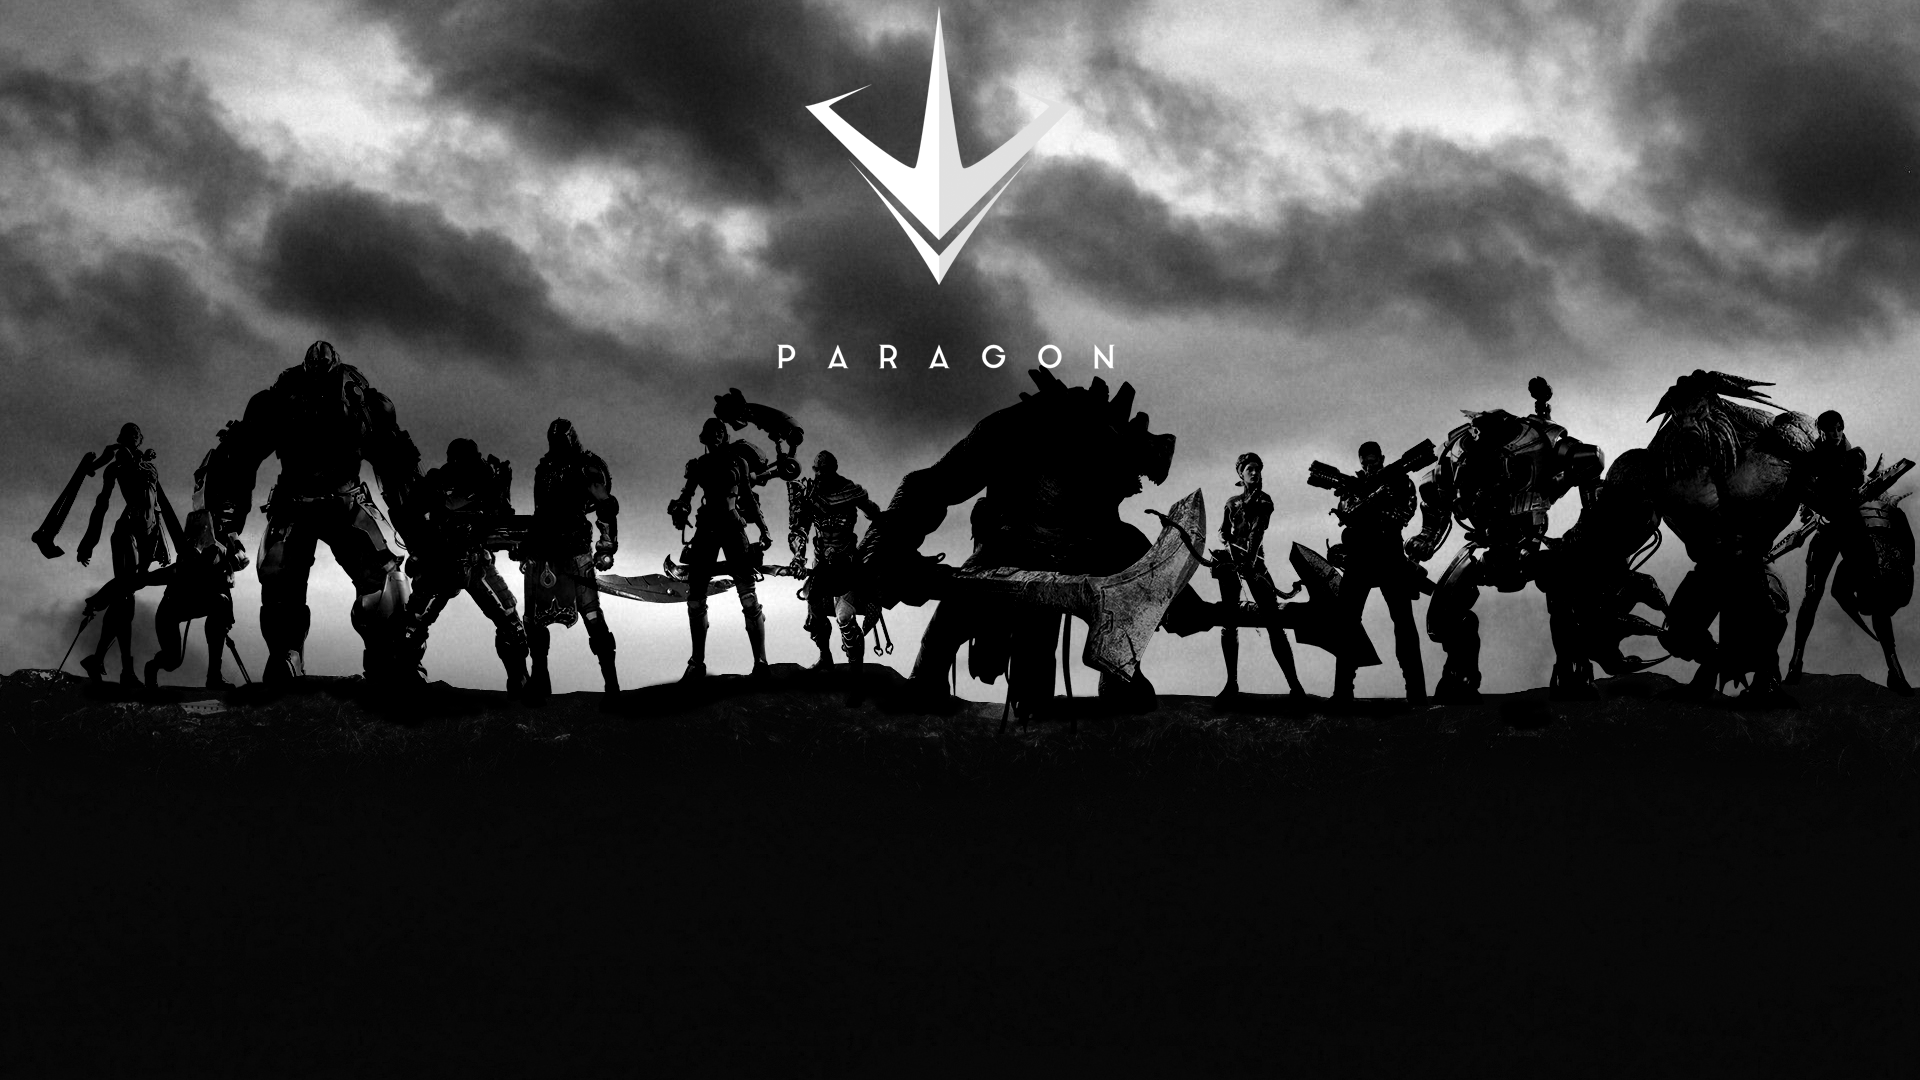 Video Game - Paragon  Wallpaper